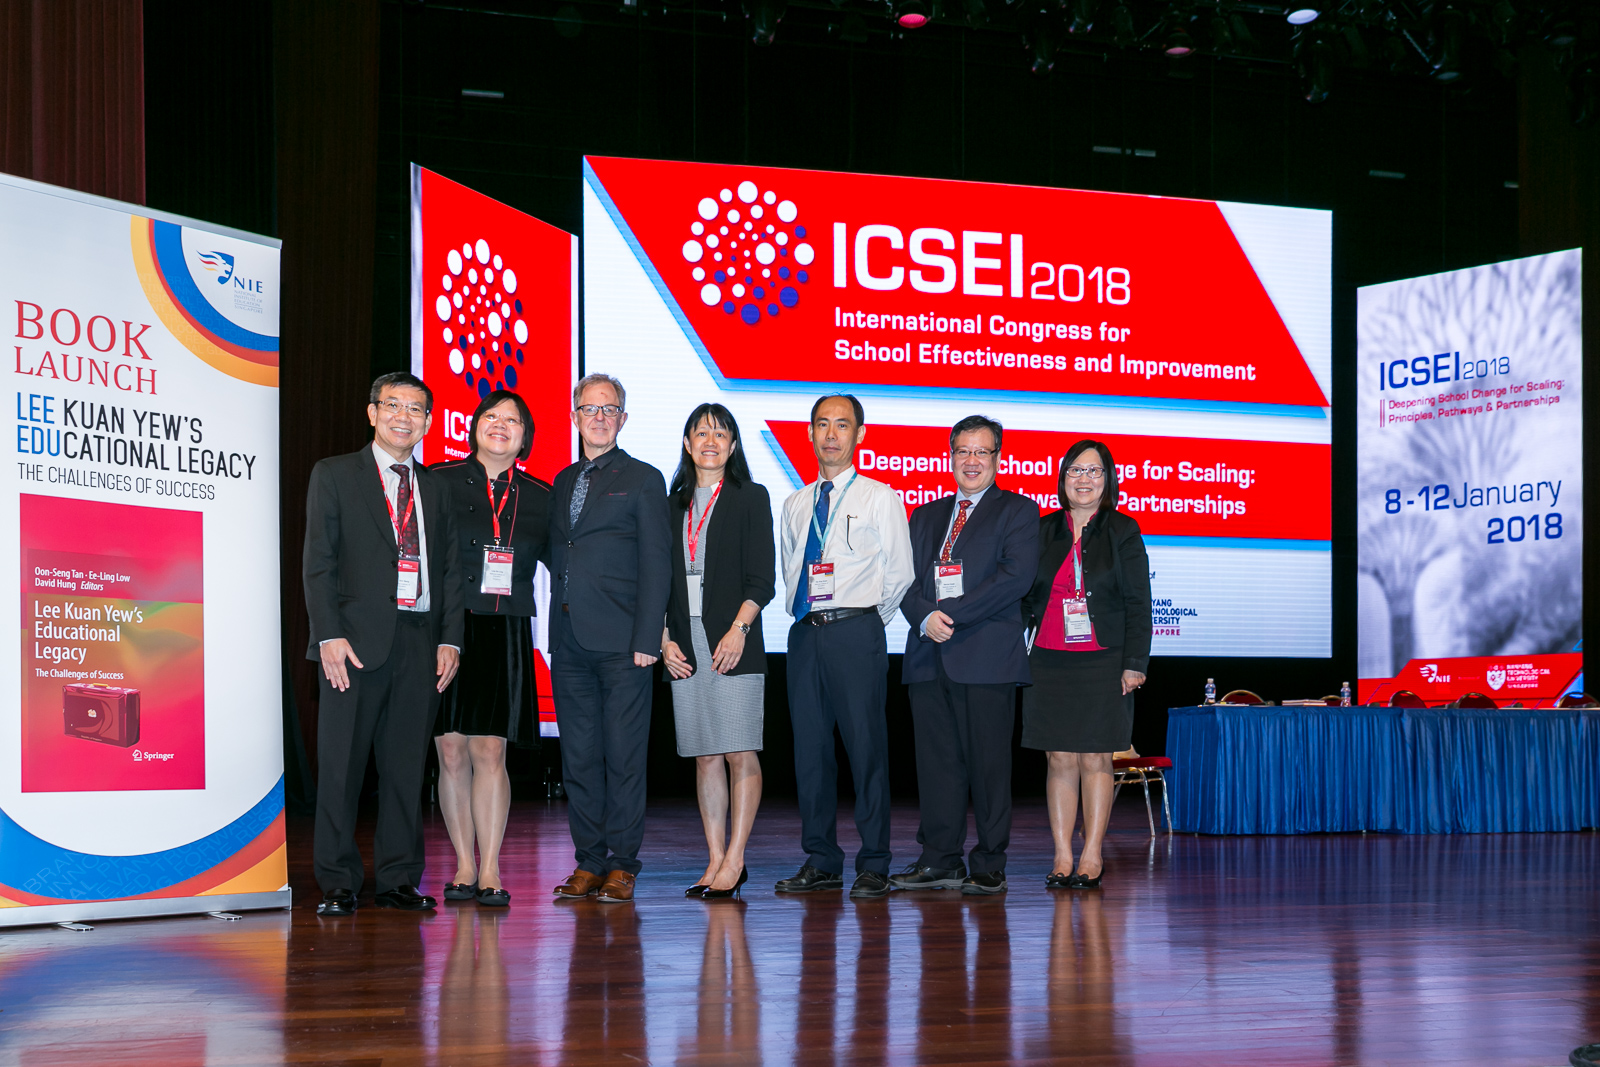 NIE Hosts 31st International Congress for School Effectiveness and Improvement